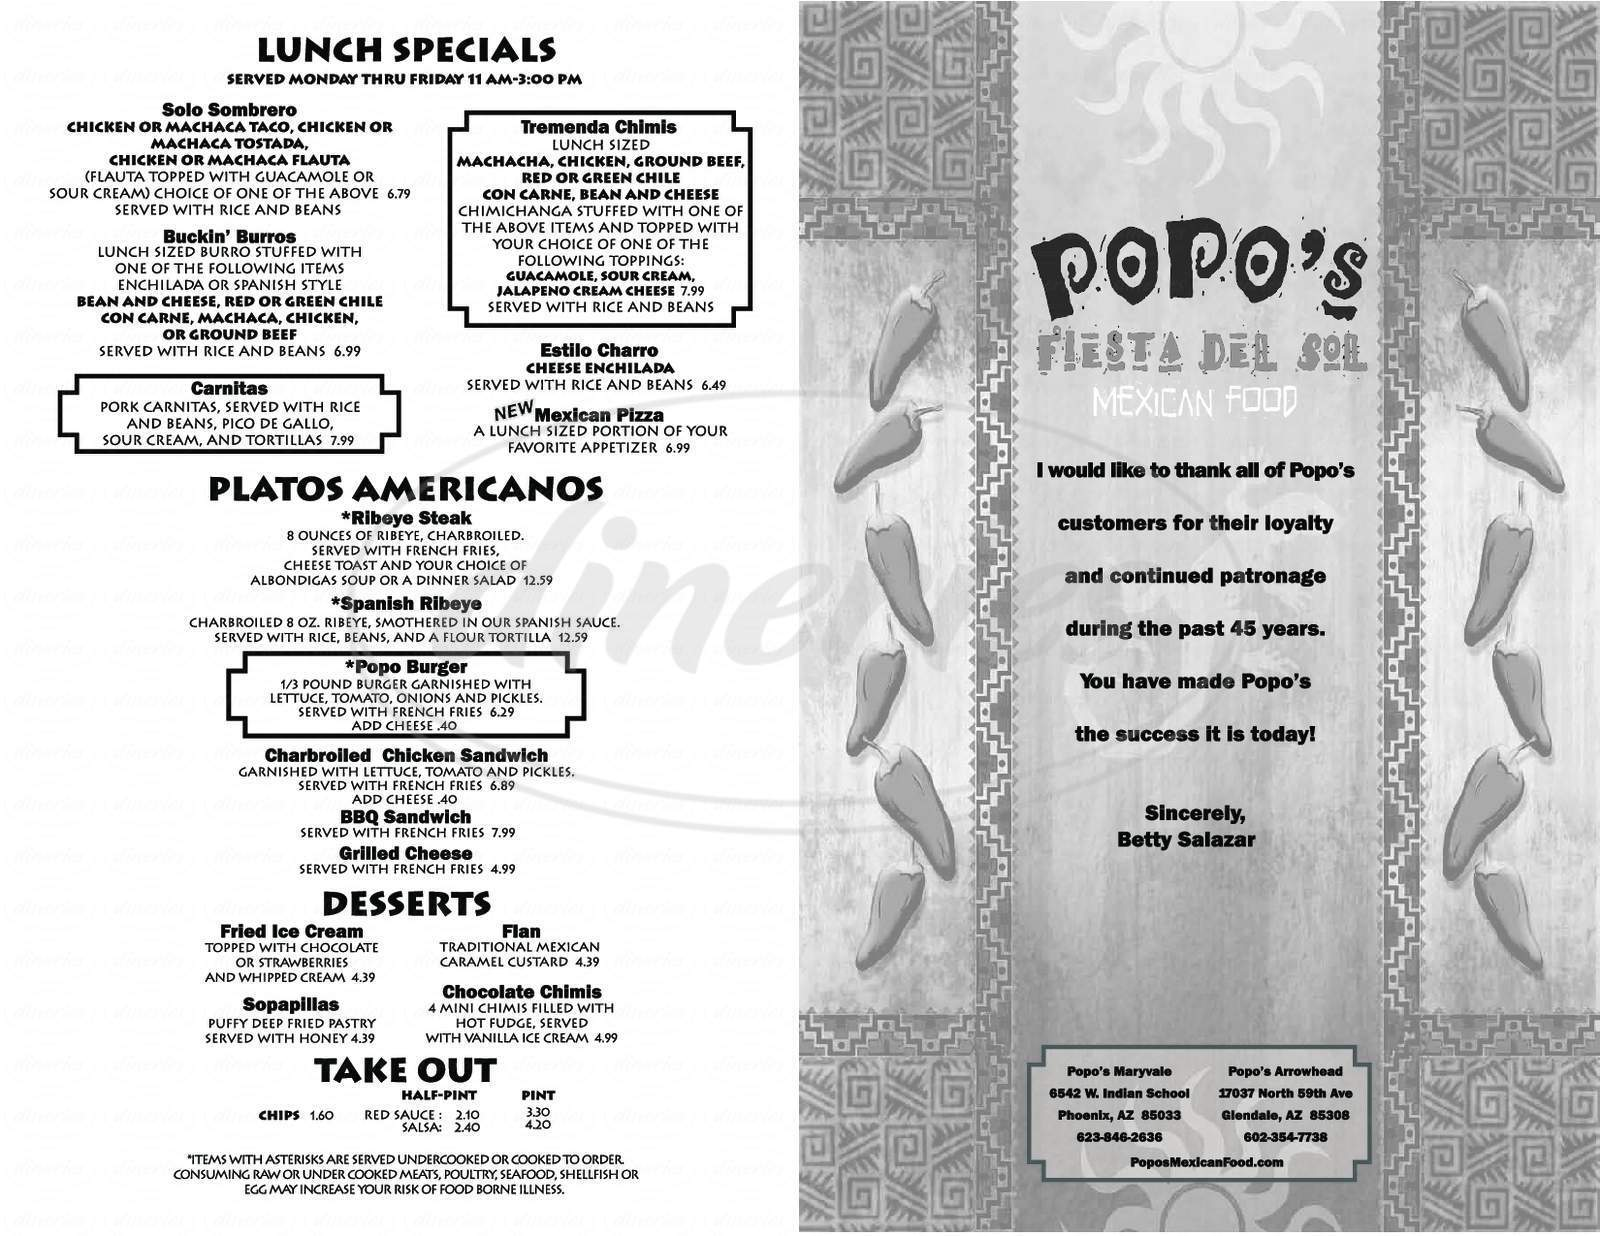 menu for Popo's Fiesta Del Sol